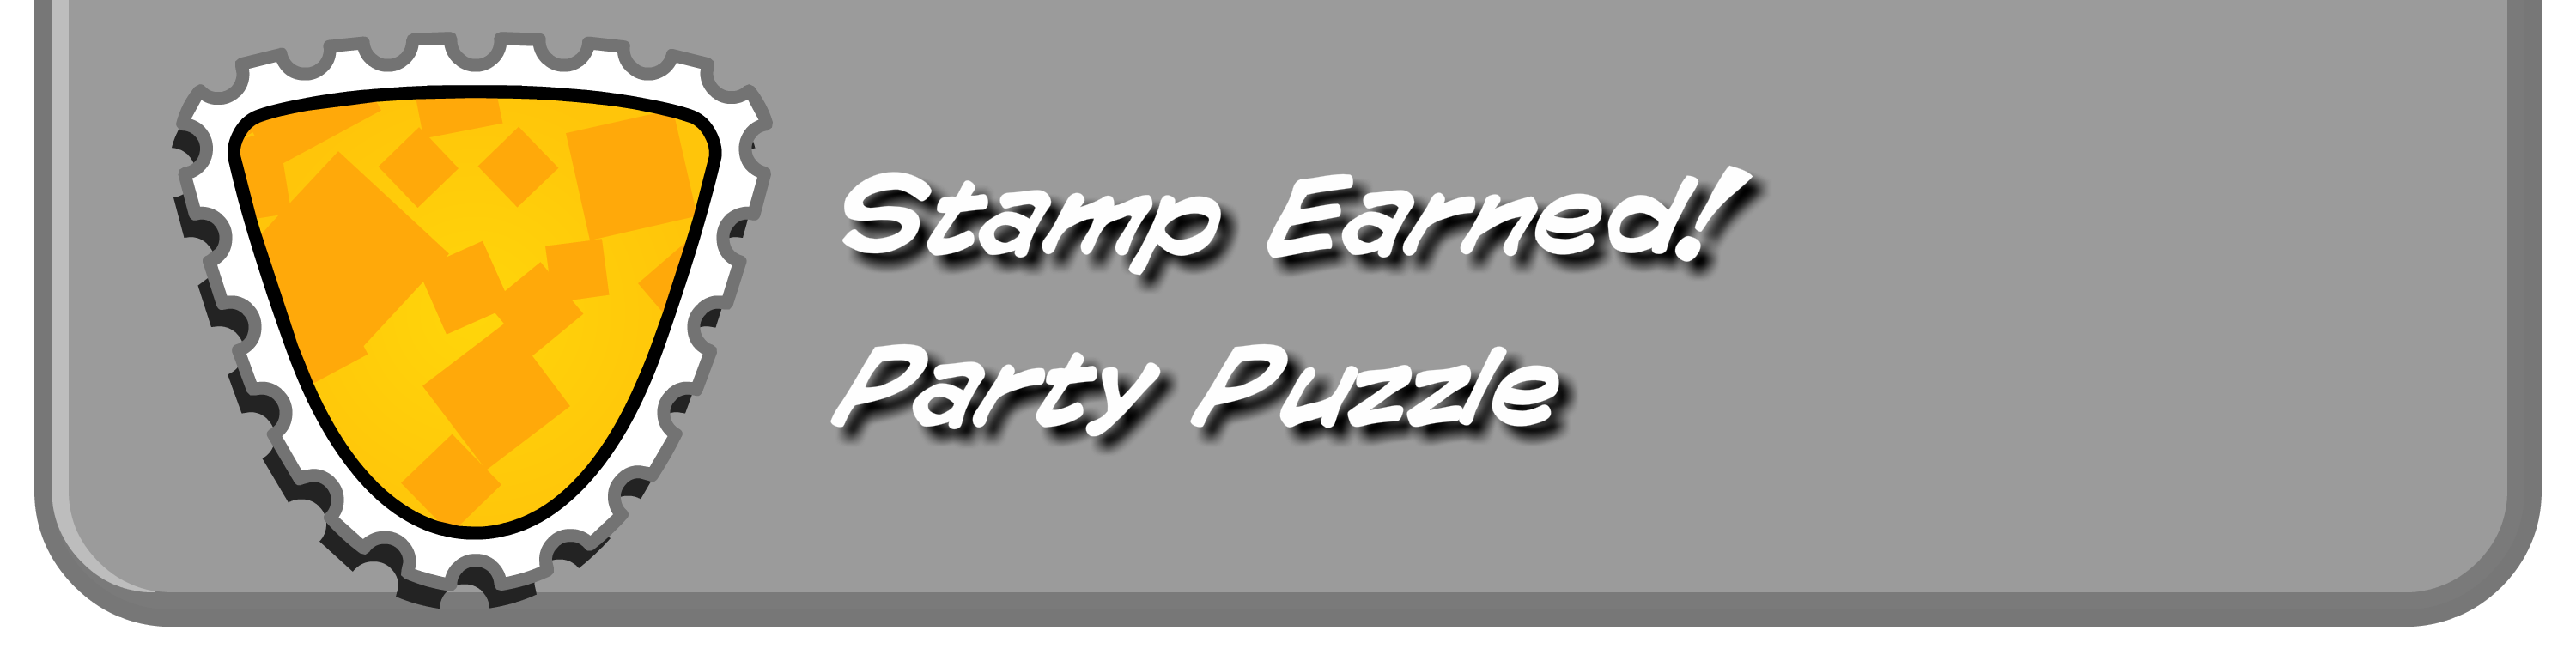 Party Puzzle Stamp